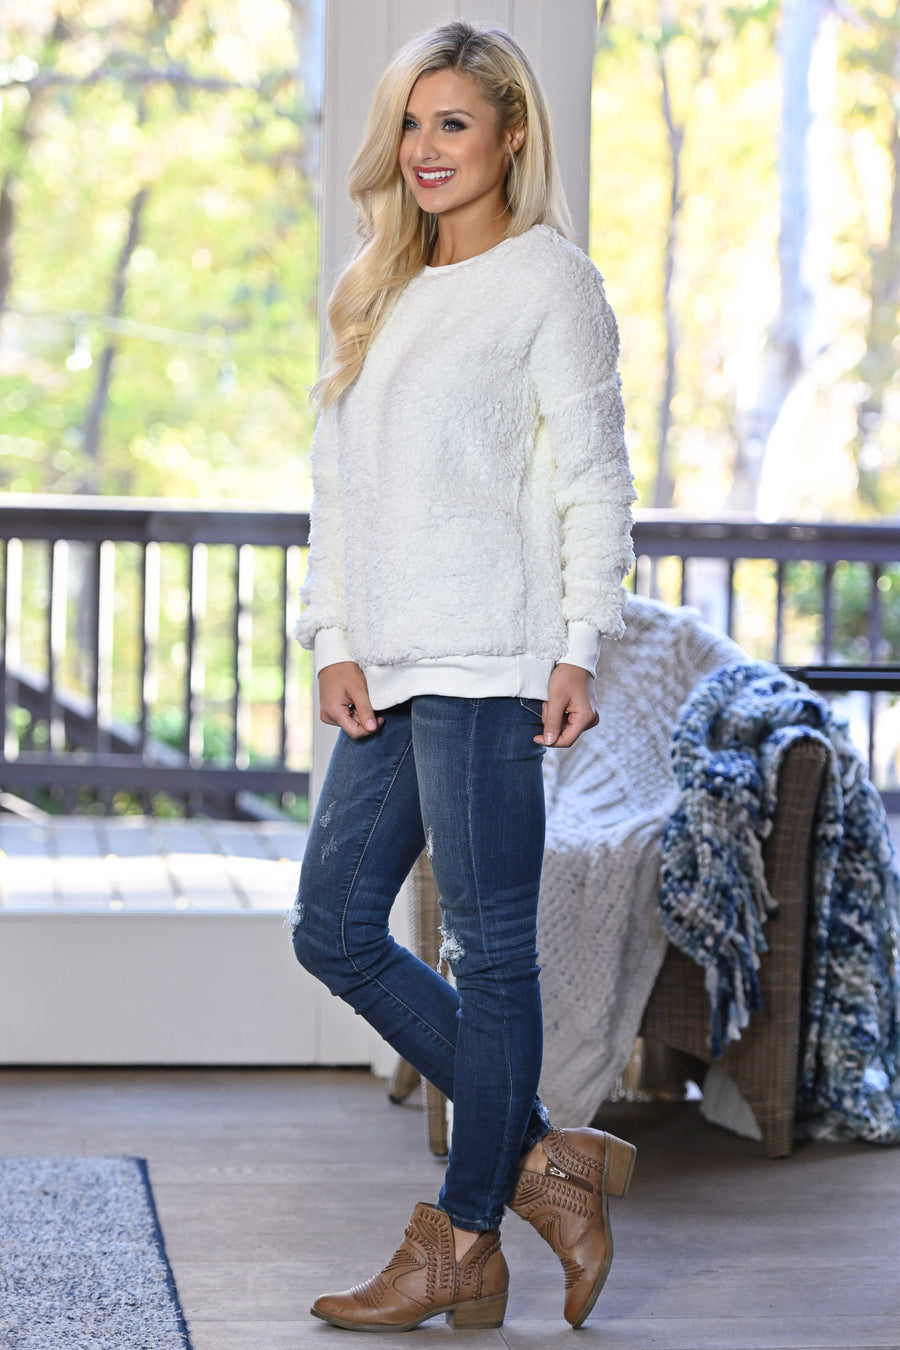 Winter Welcome Sweatshirt - Ivory women's soft & cozy sherpa pullover, Closet Candy Boutique 1